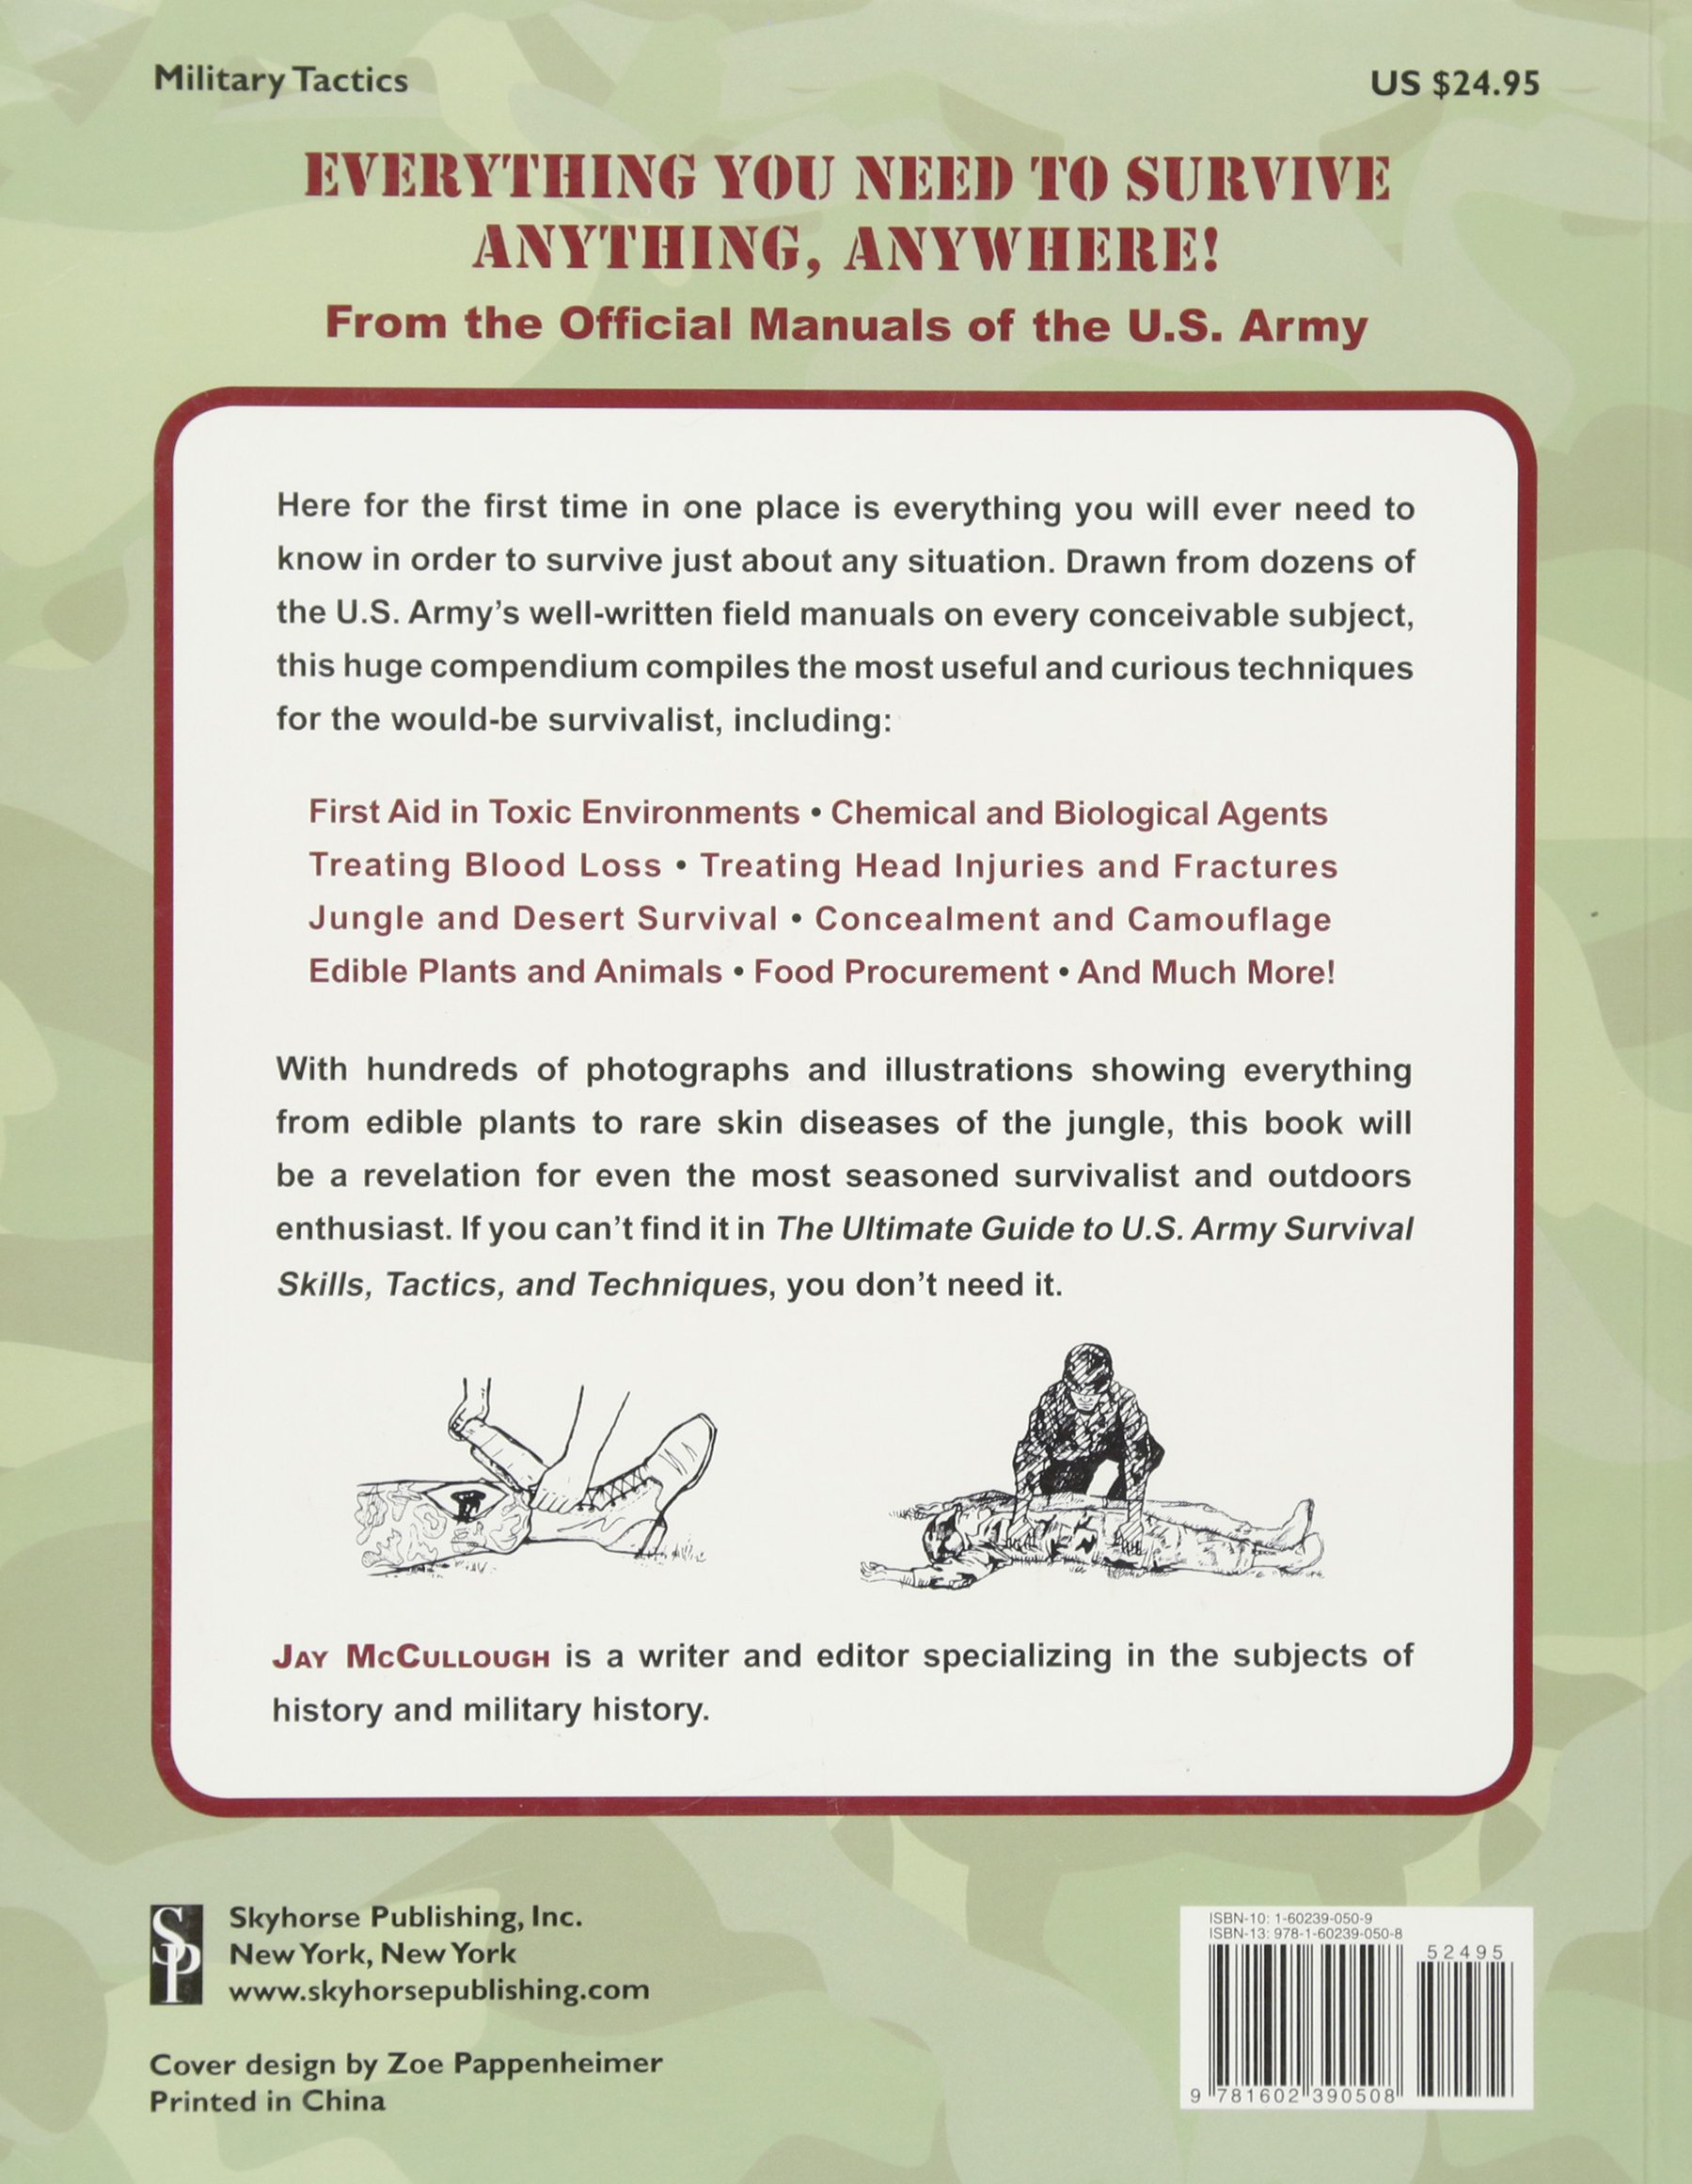 The Ultimate Guide to U.S. Army Survival Skills, Tactics, and Techniques  (The Ultimate Guides): Department of the Army, Jay McCullough:  9781602390508: ...